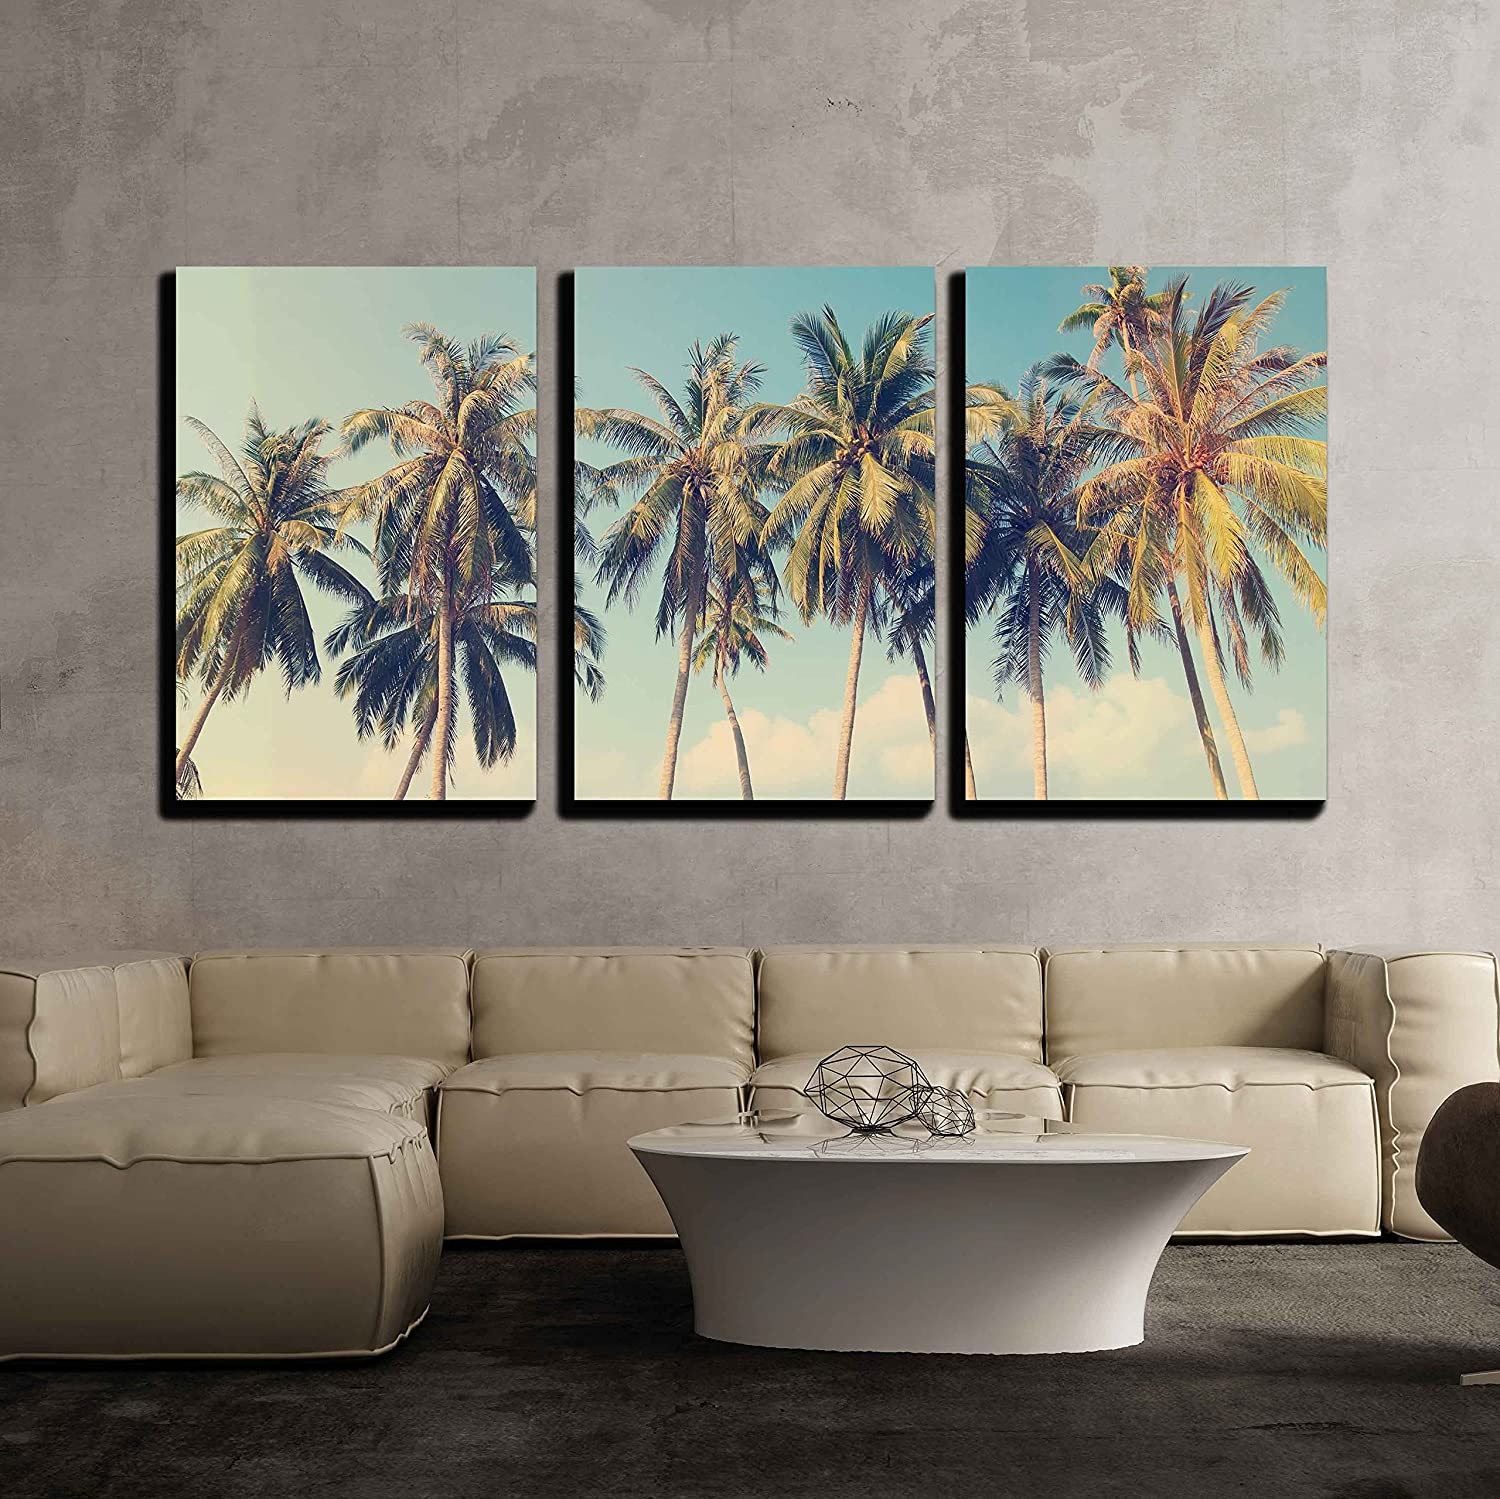 Charming Visual, Made With Love, Vintage Tropical Palm Trees on a Beach x3 Panels